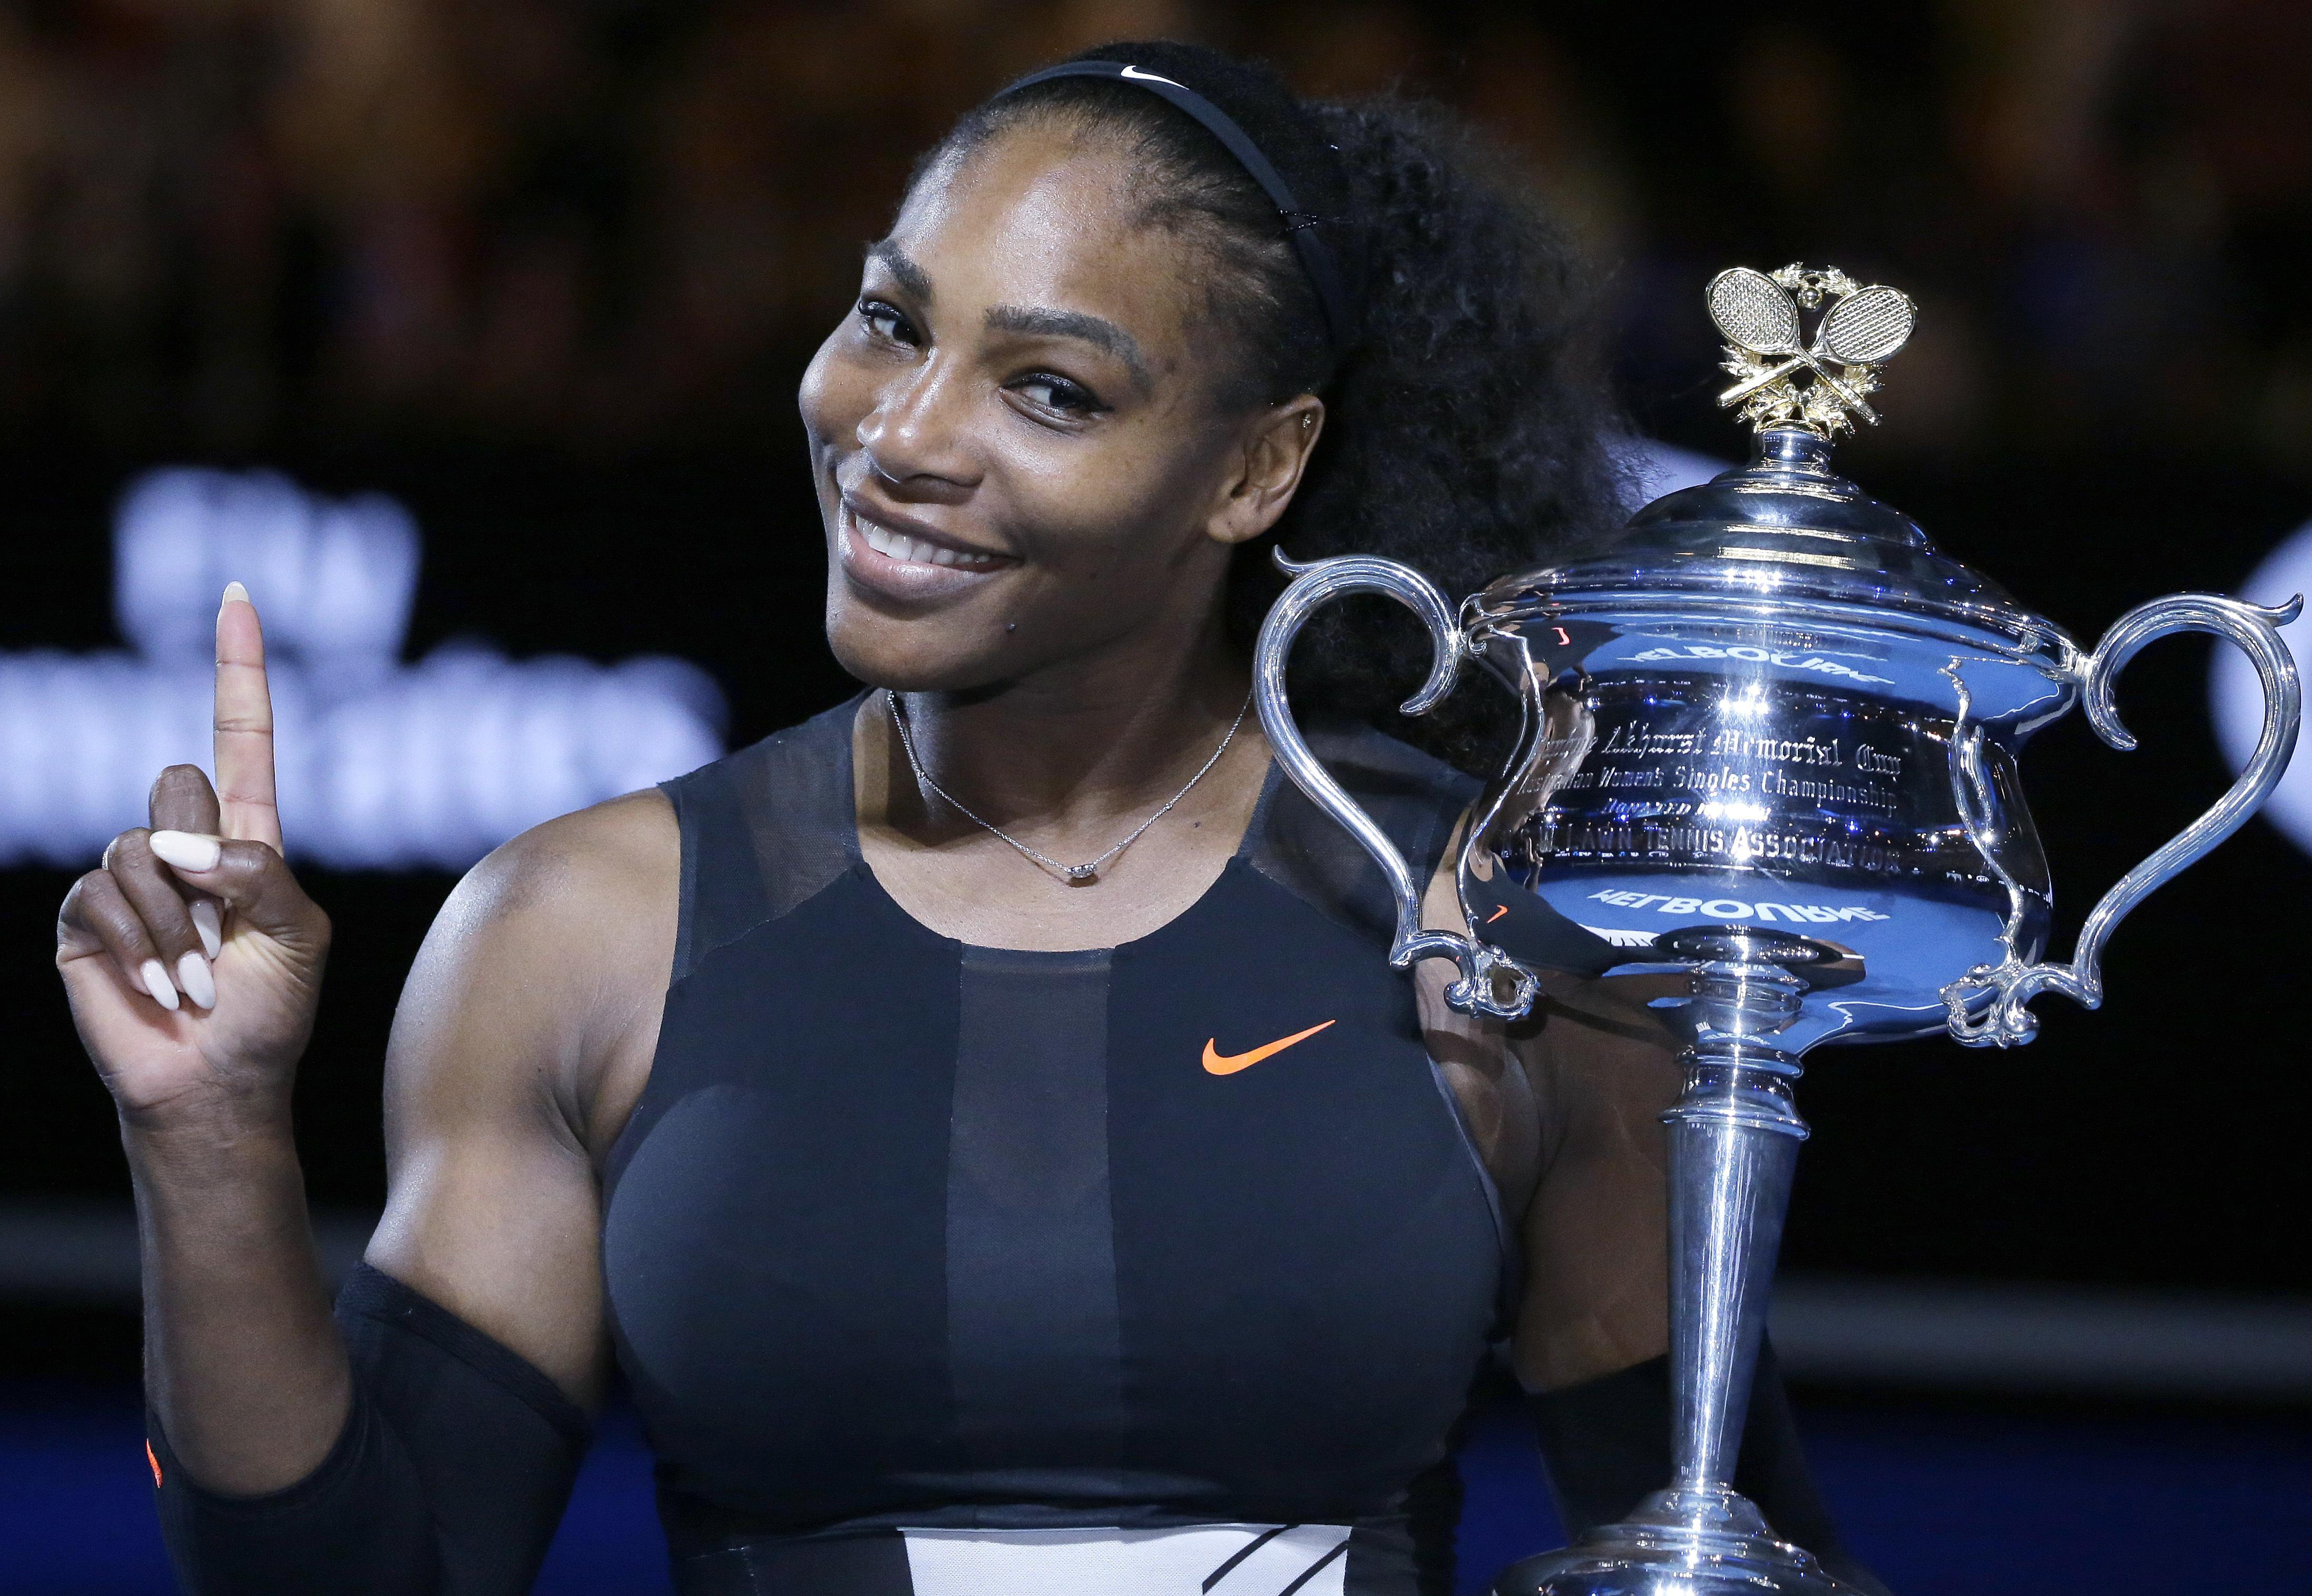 Williams won the tournament while eight weeks pregnant last year